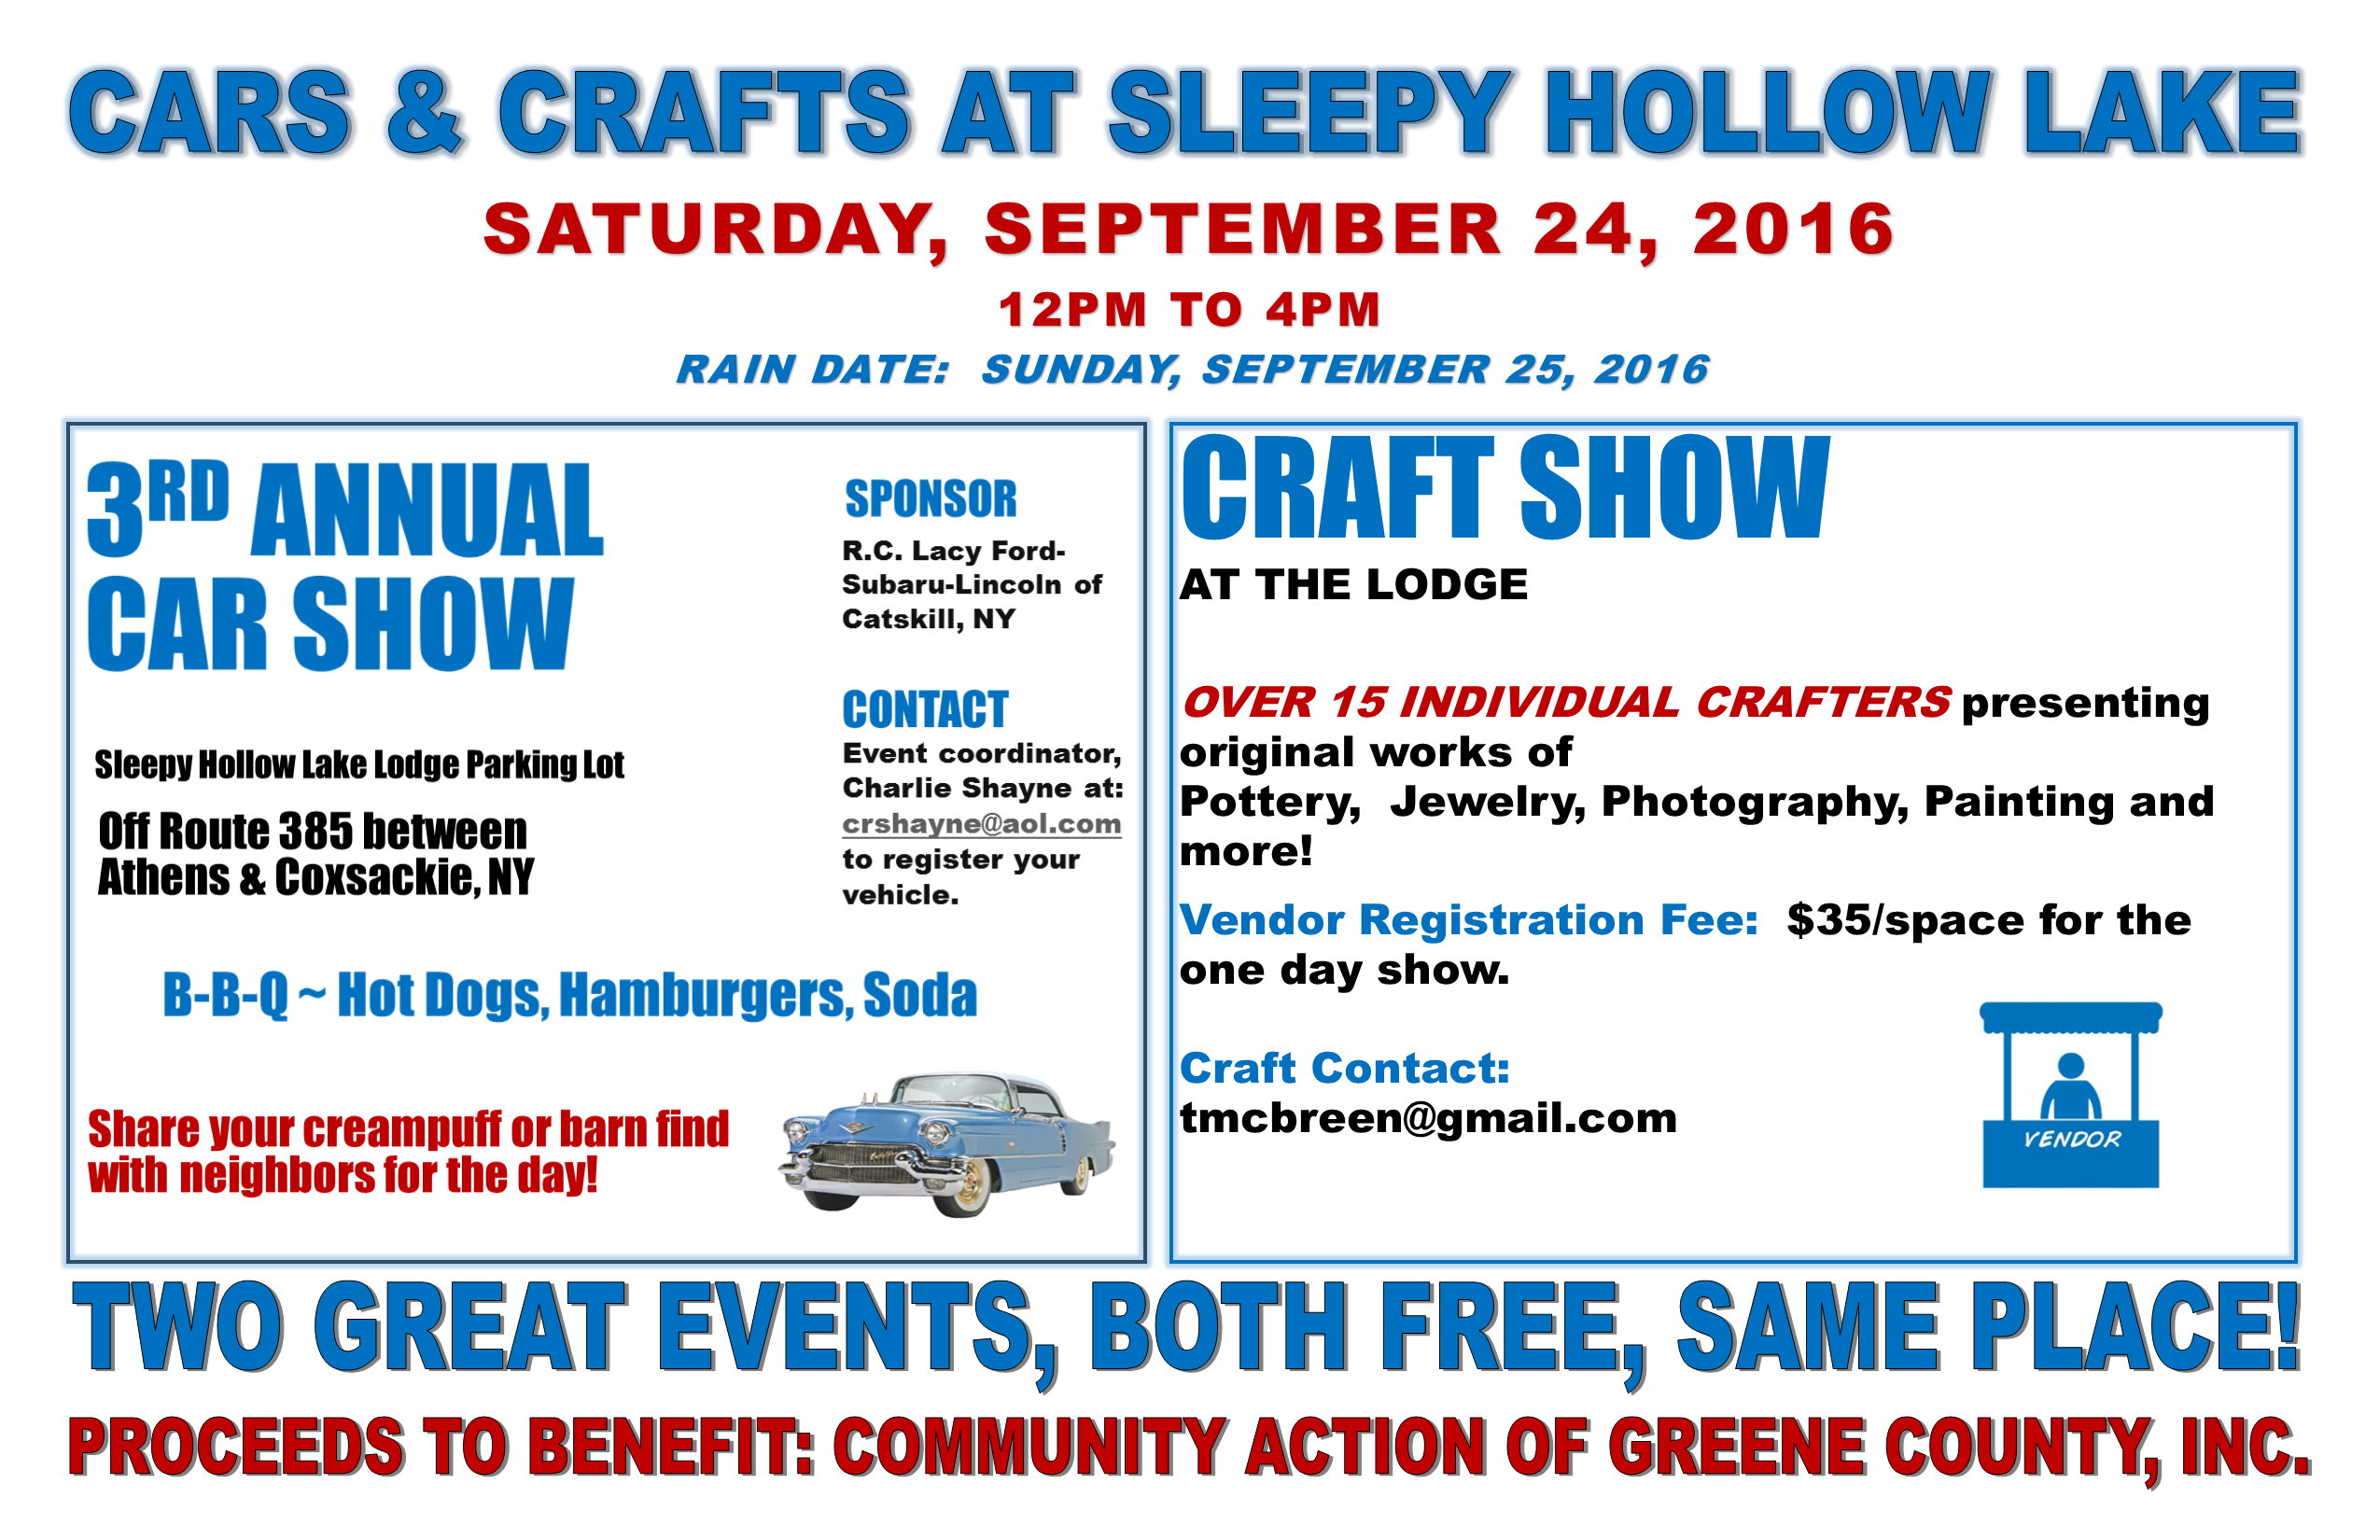 Ledger_Size_Sleepy_Hollow_Flyer_Craft_Show_PNG-bicubic